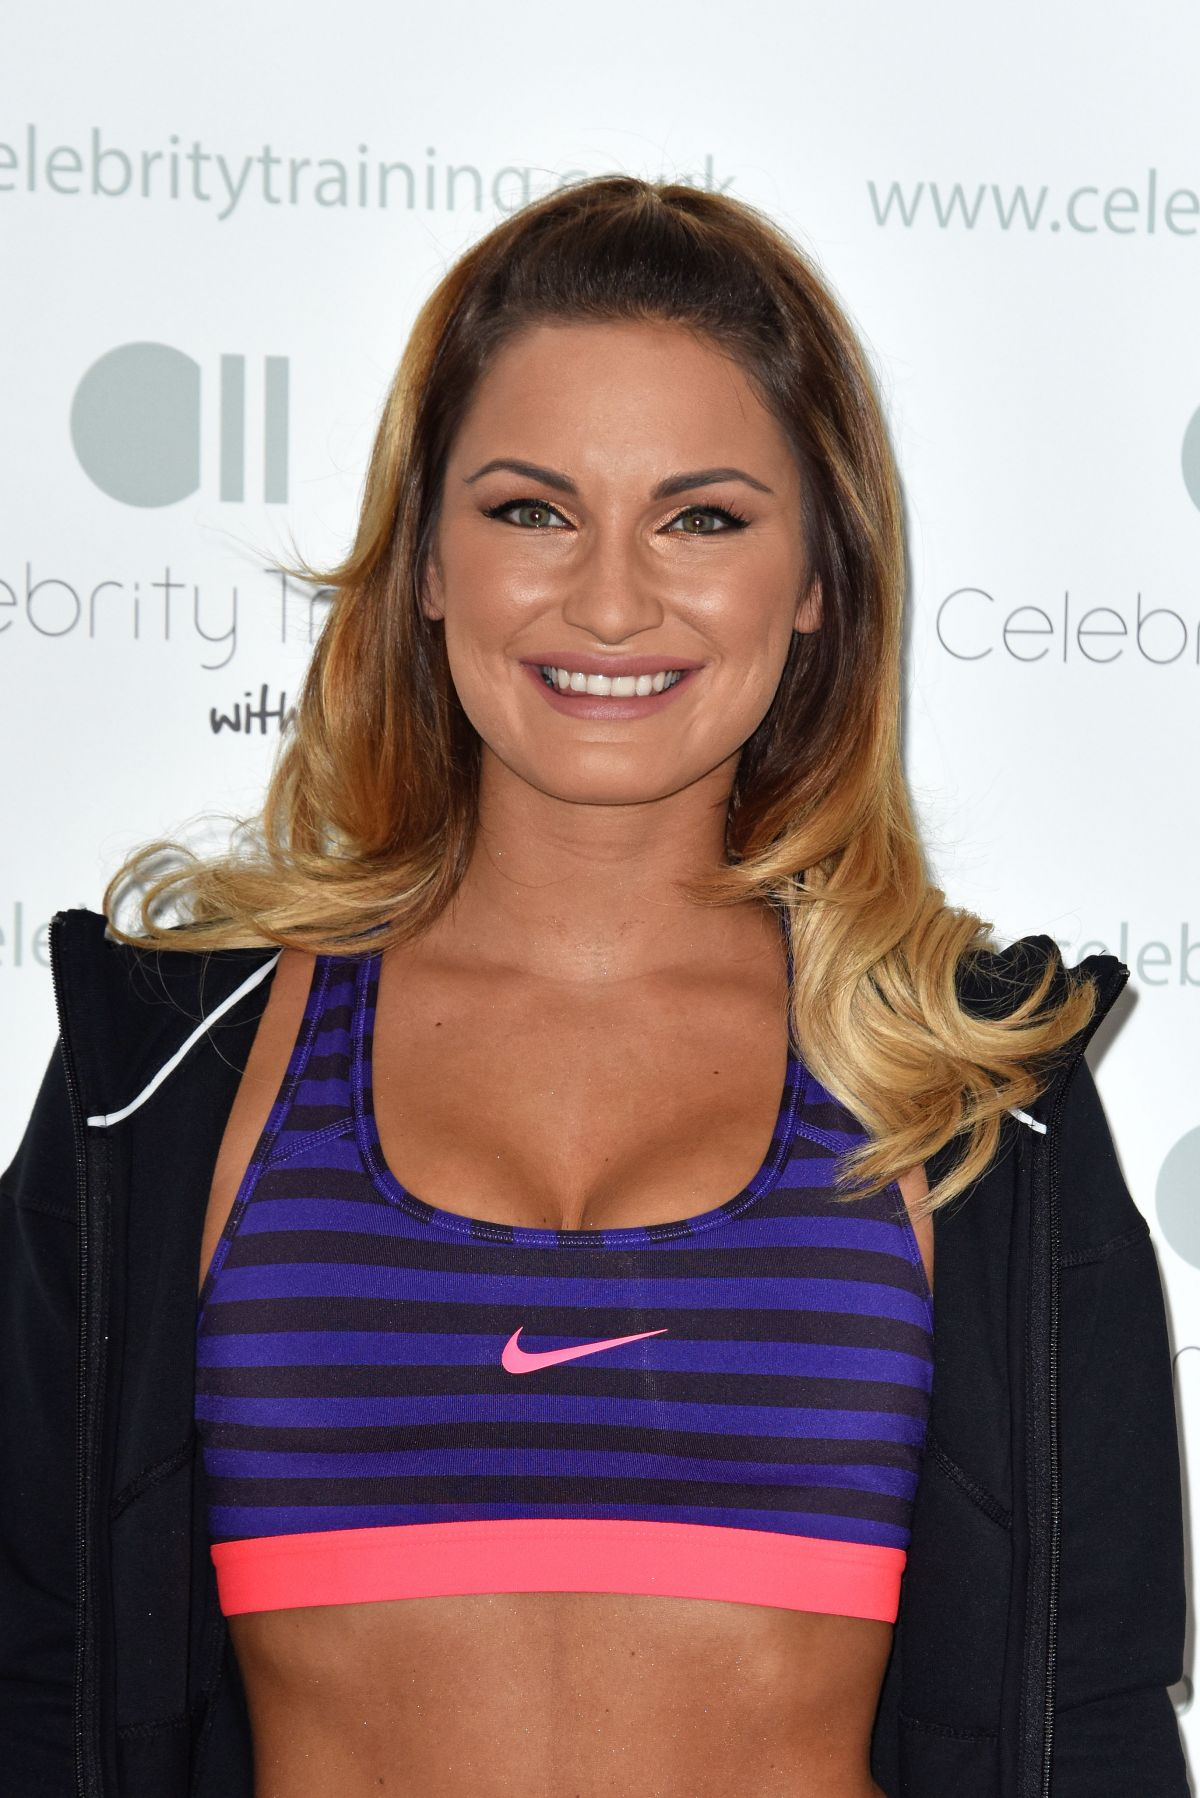 Sam Faiers At Celebrity Training With Photocall In London